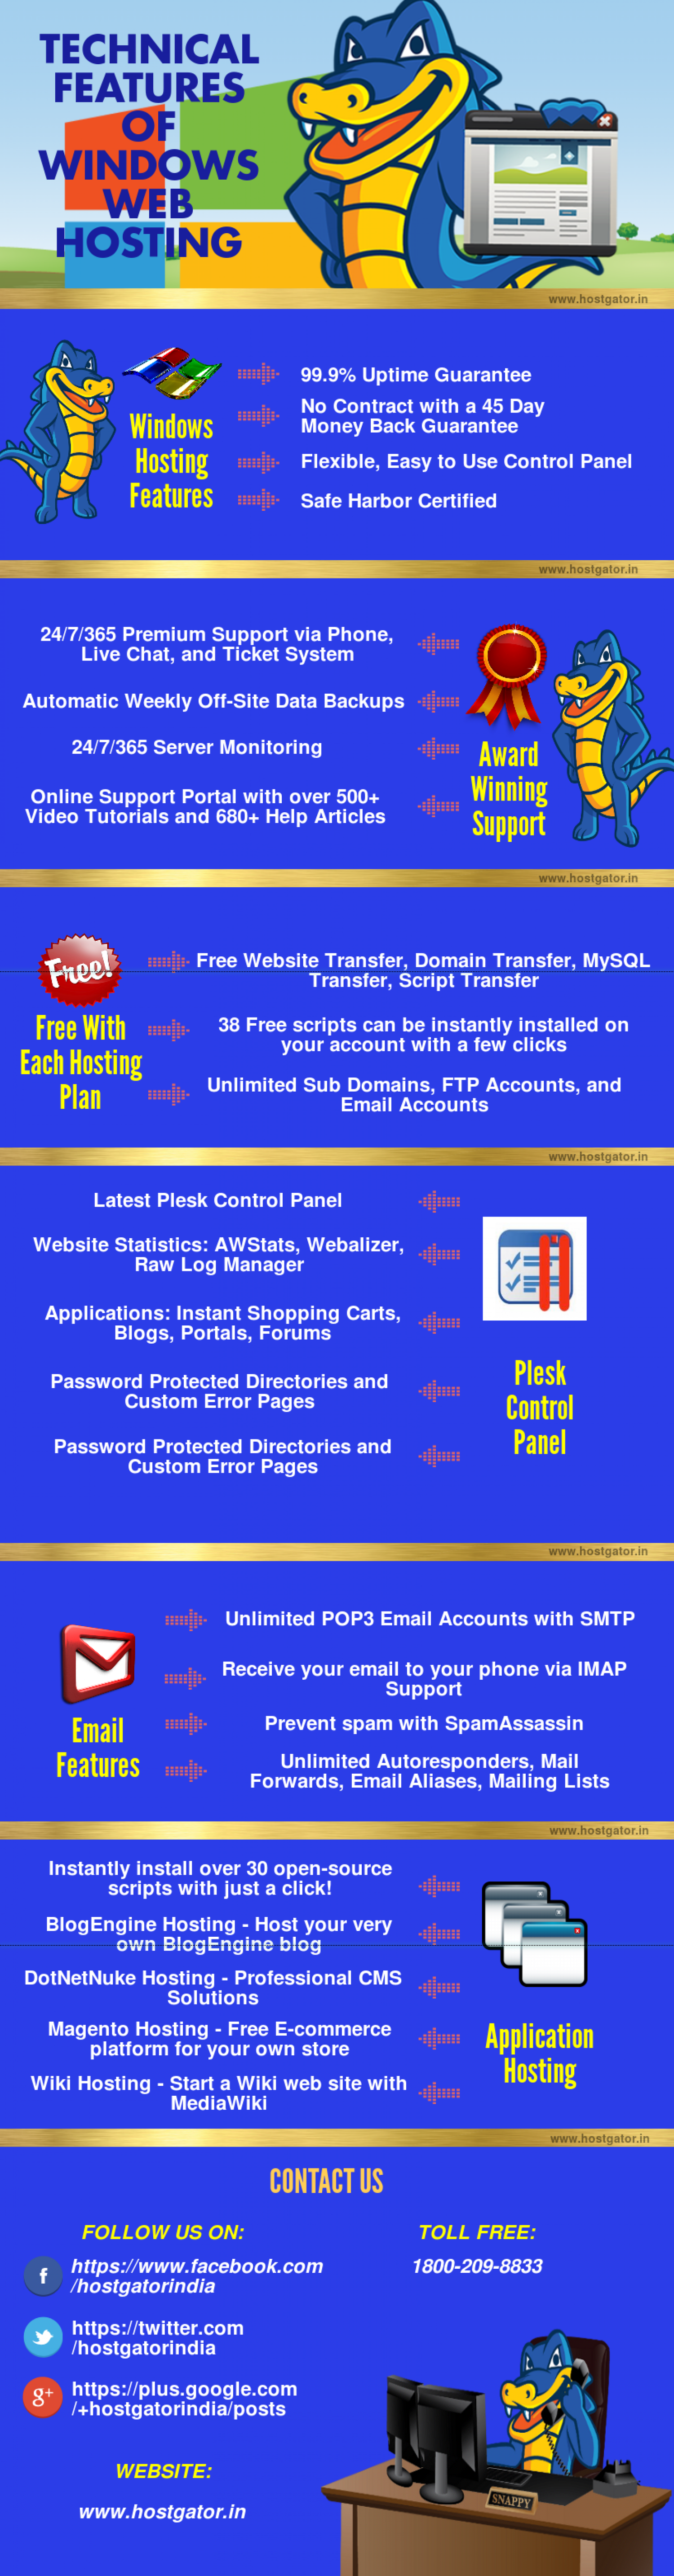 Technical Features of Windows Web Hosting Infographic